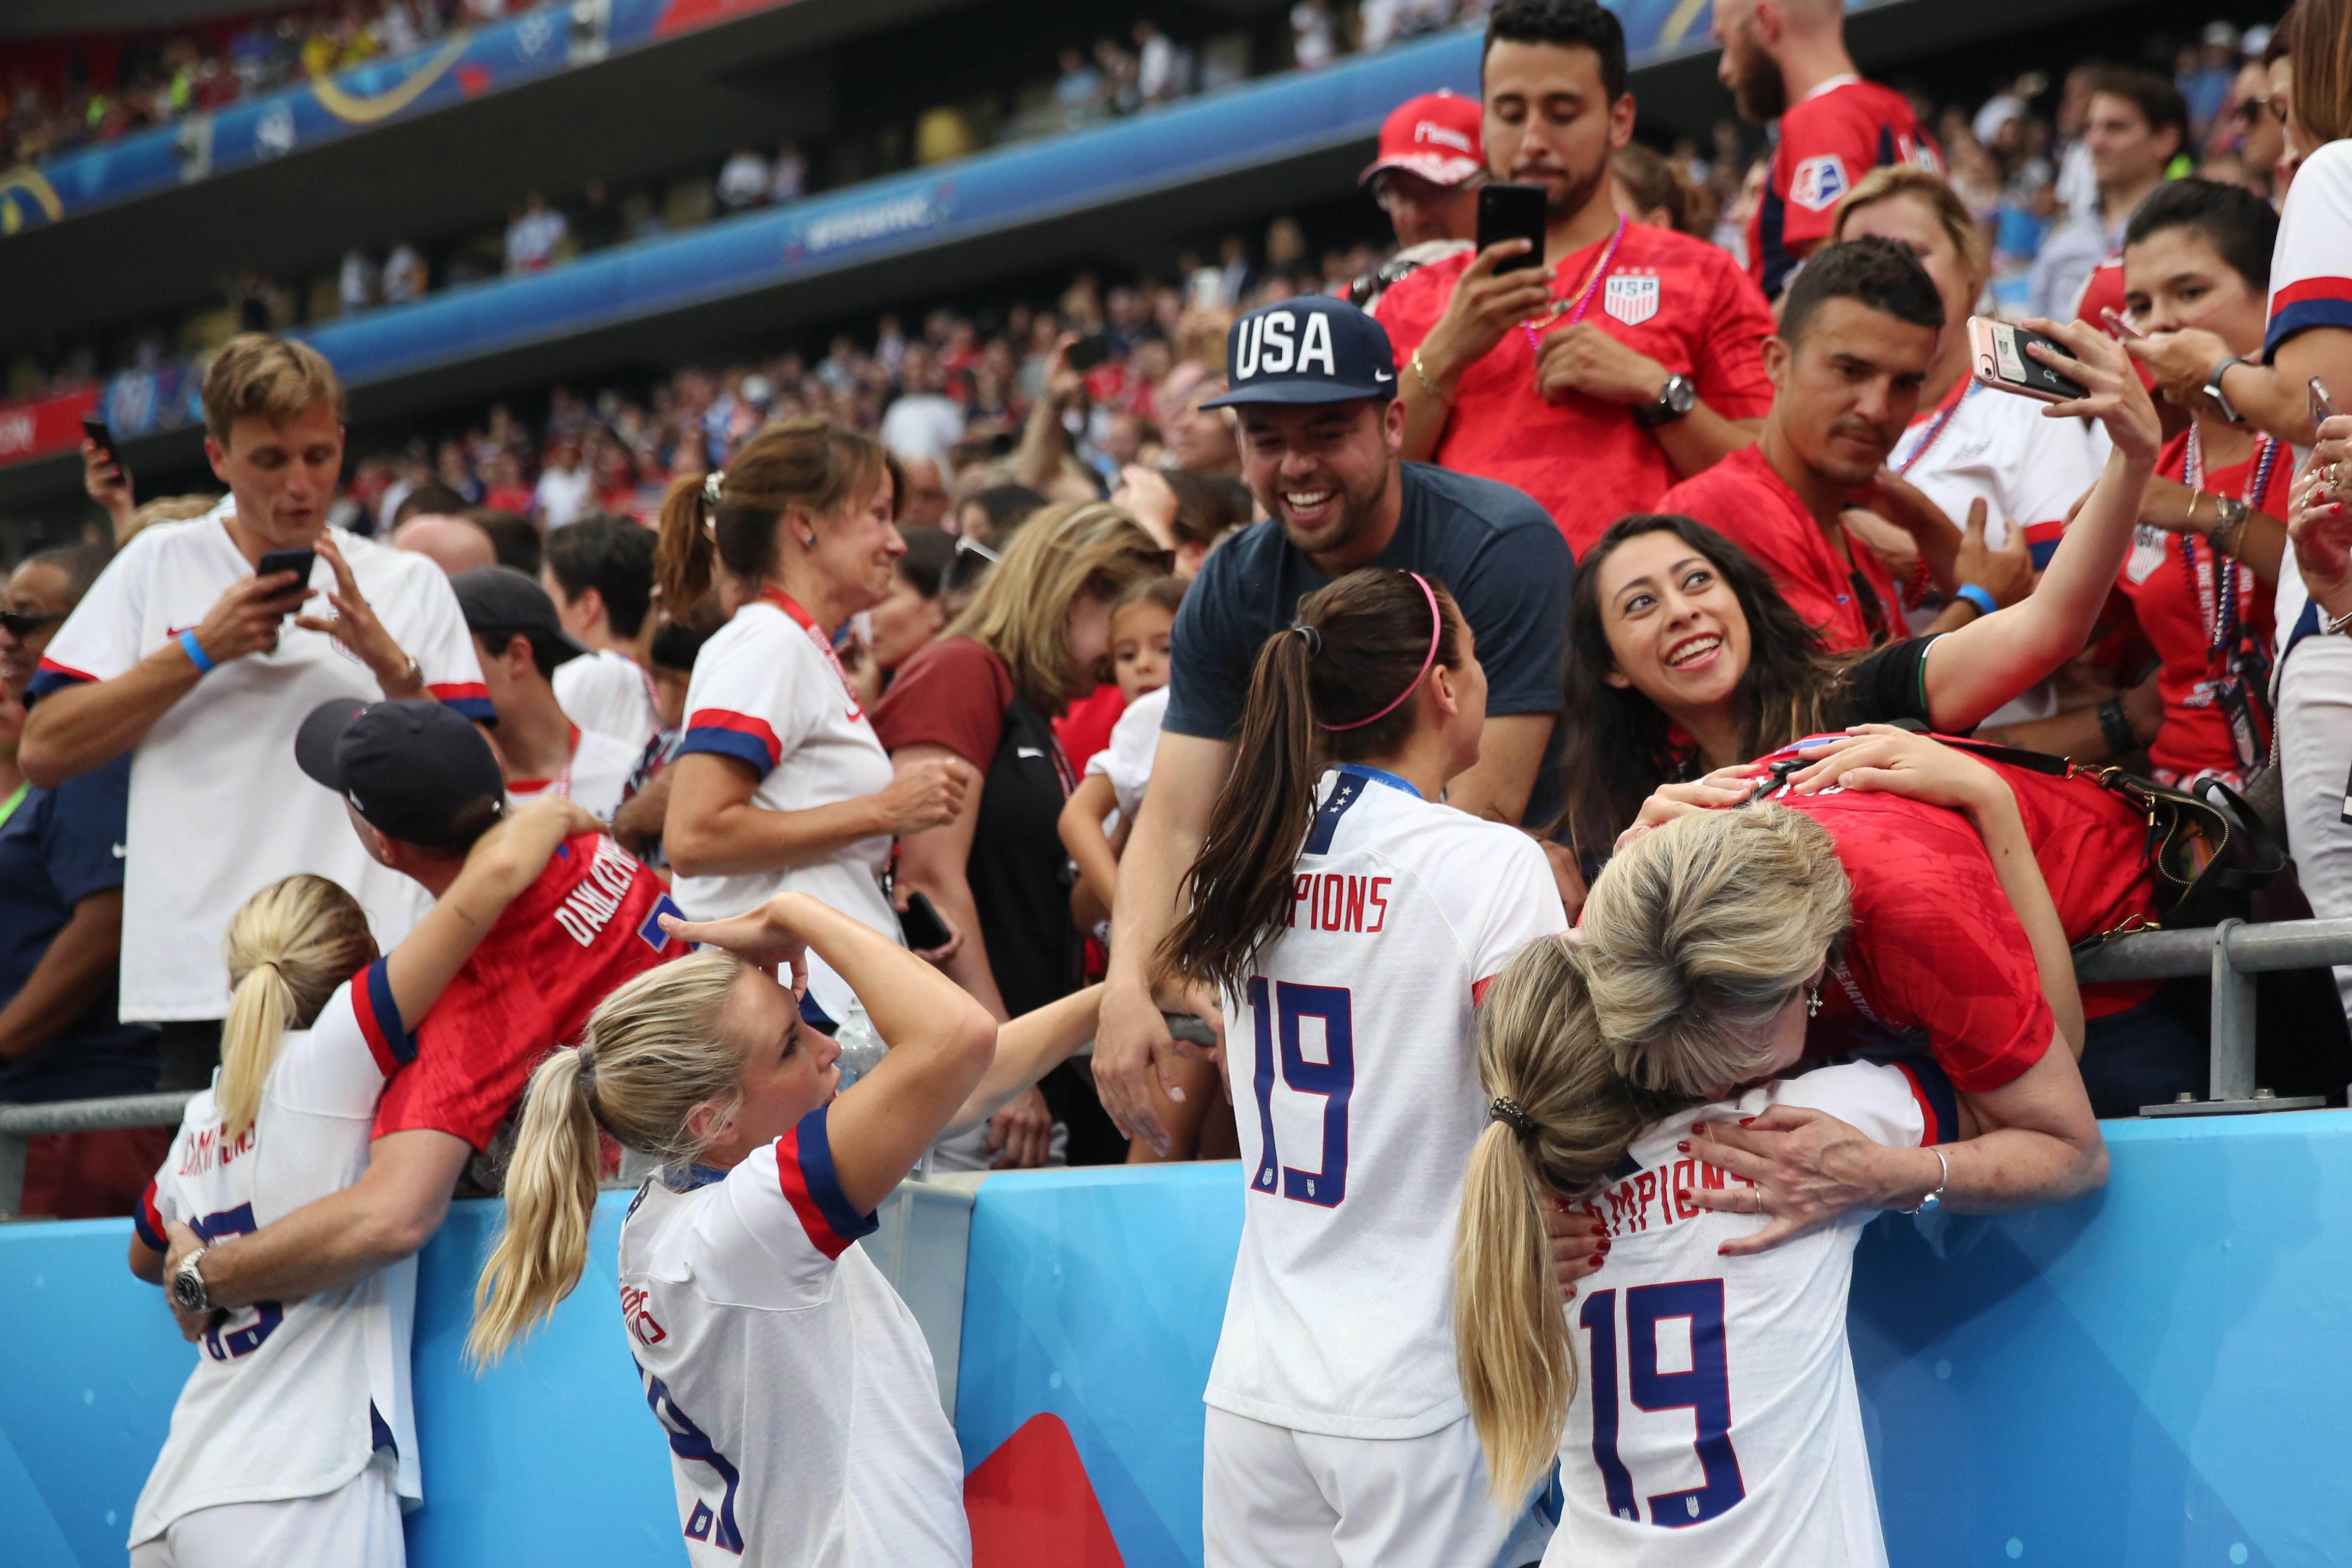 USWNT celebrates World Cup title with loved ones